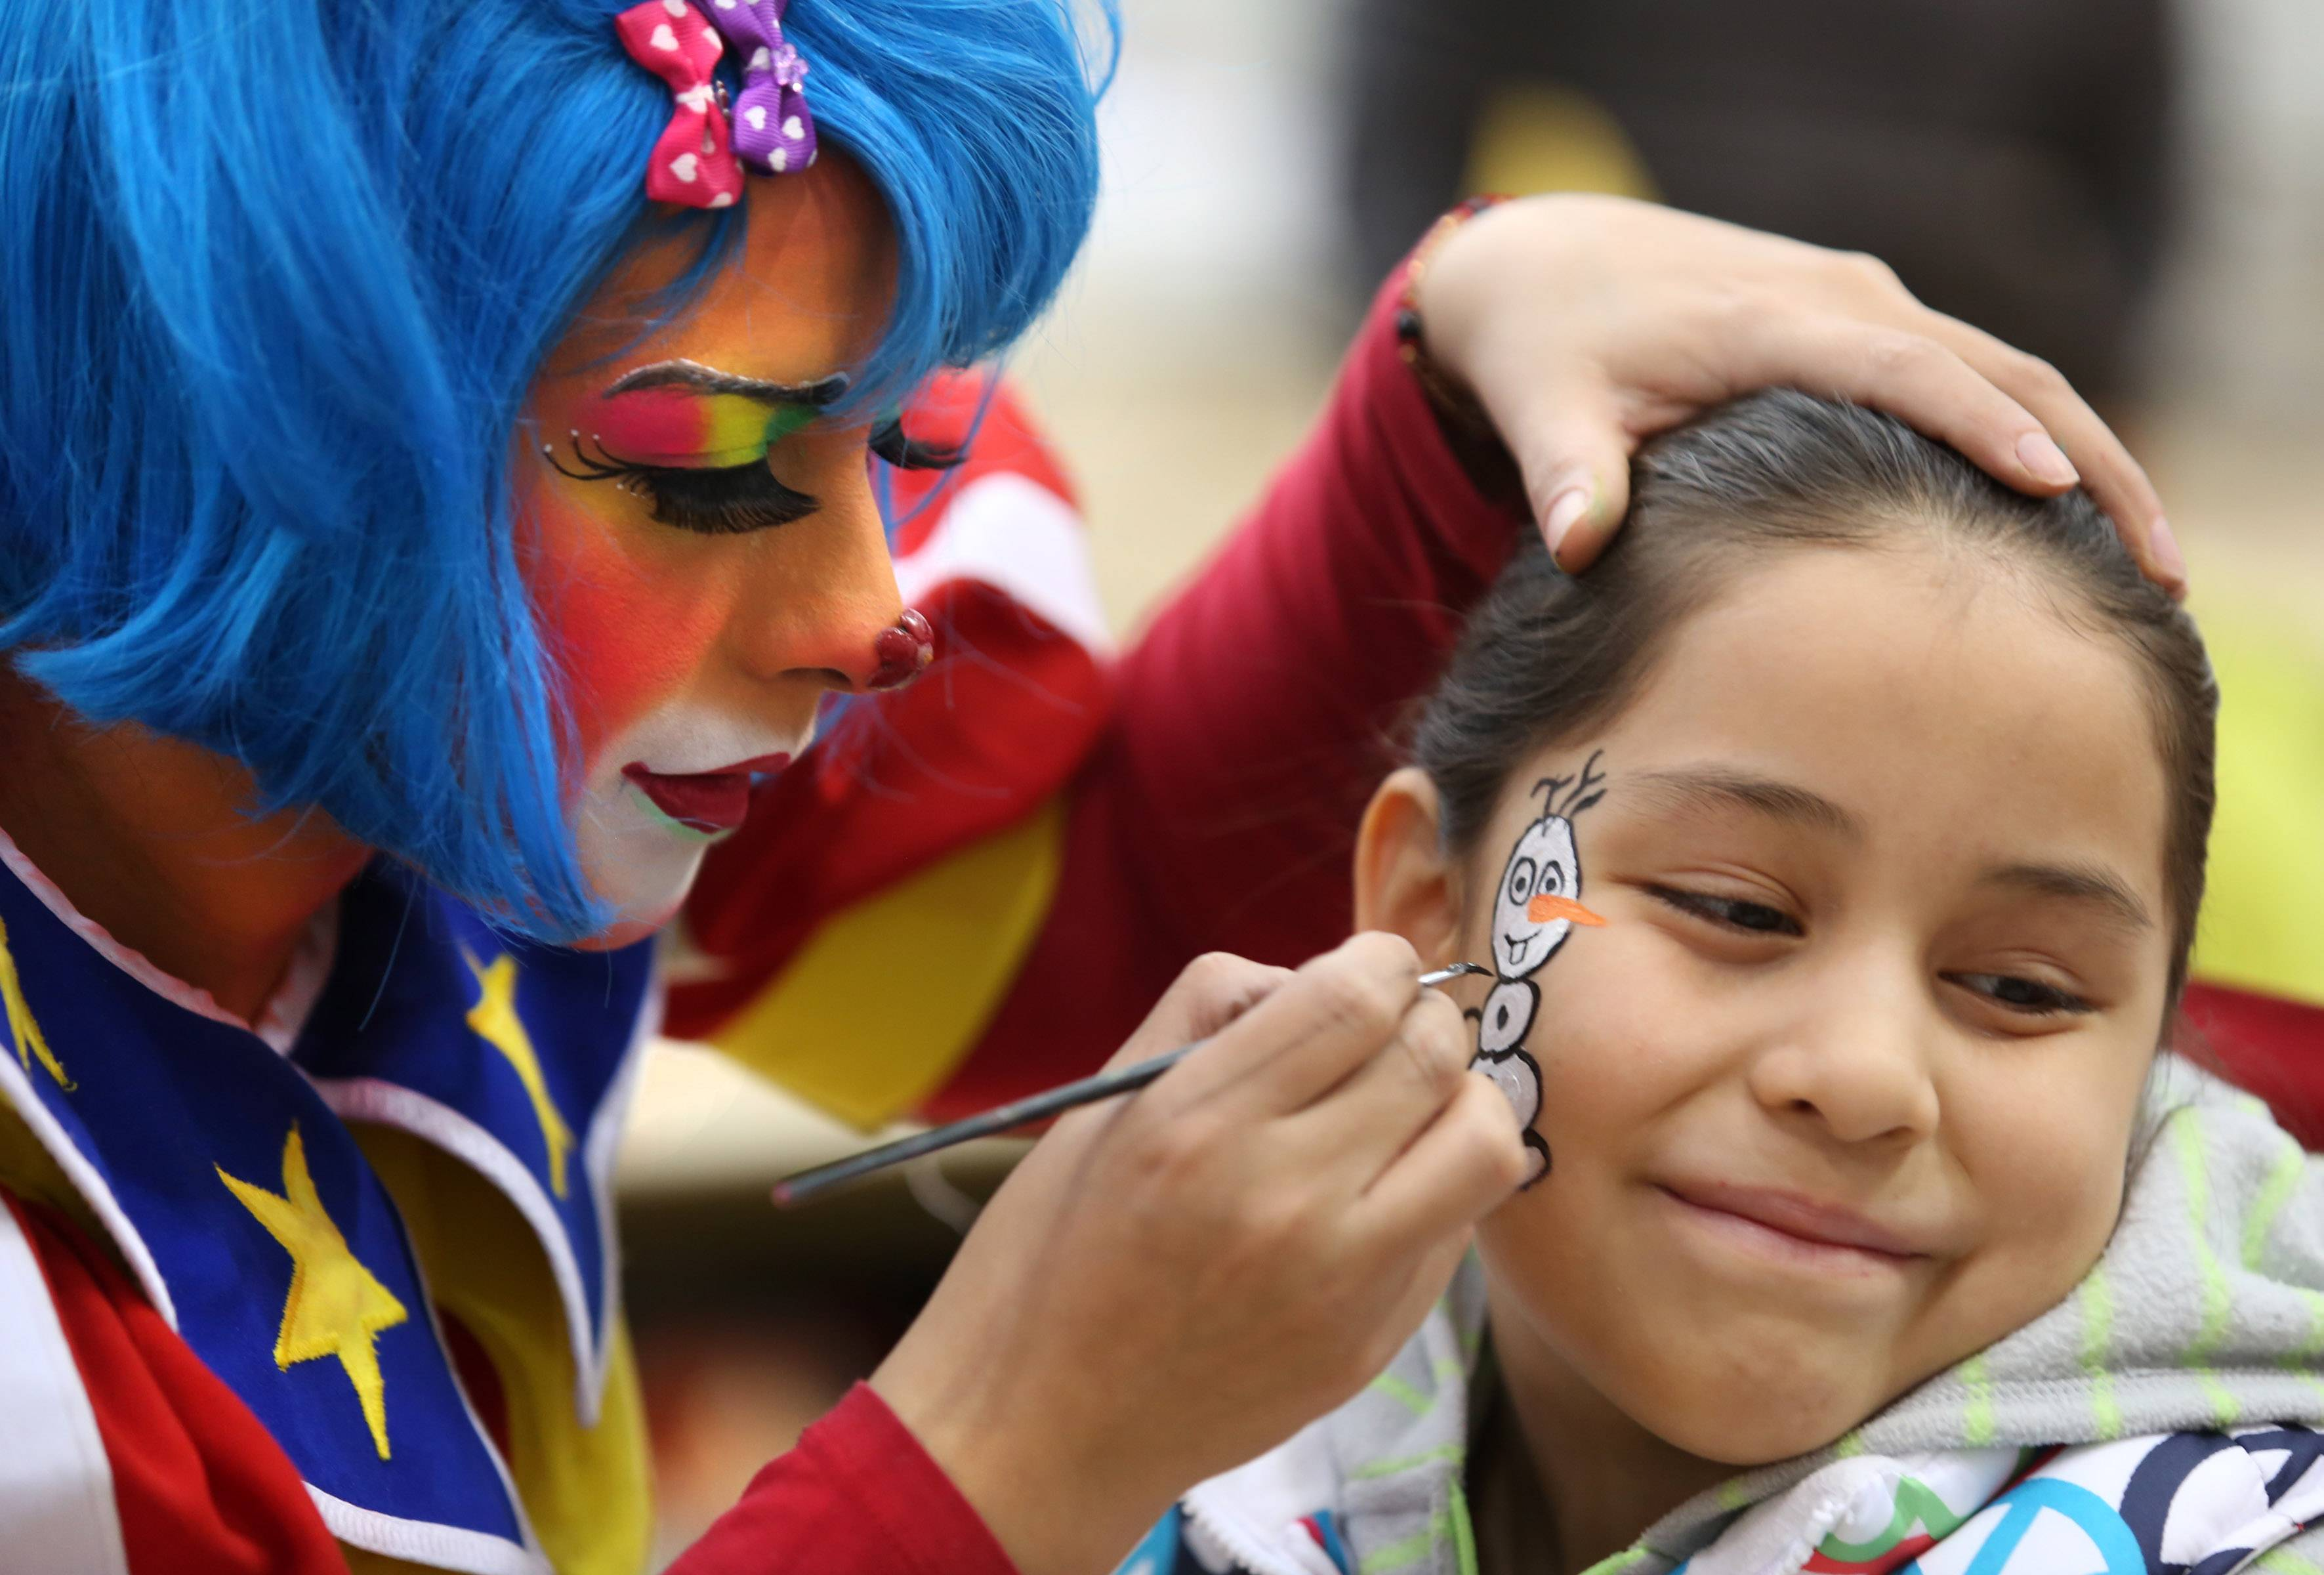 Montse Acosta, 9, gets a snowman painted on her face by Ruth Flores playing the role of Chispita the Clown, both of Hanover Park, at the Kids at Hope Community Resource Fair at Hanover Park's Community Center Gym on Saturday.